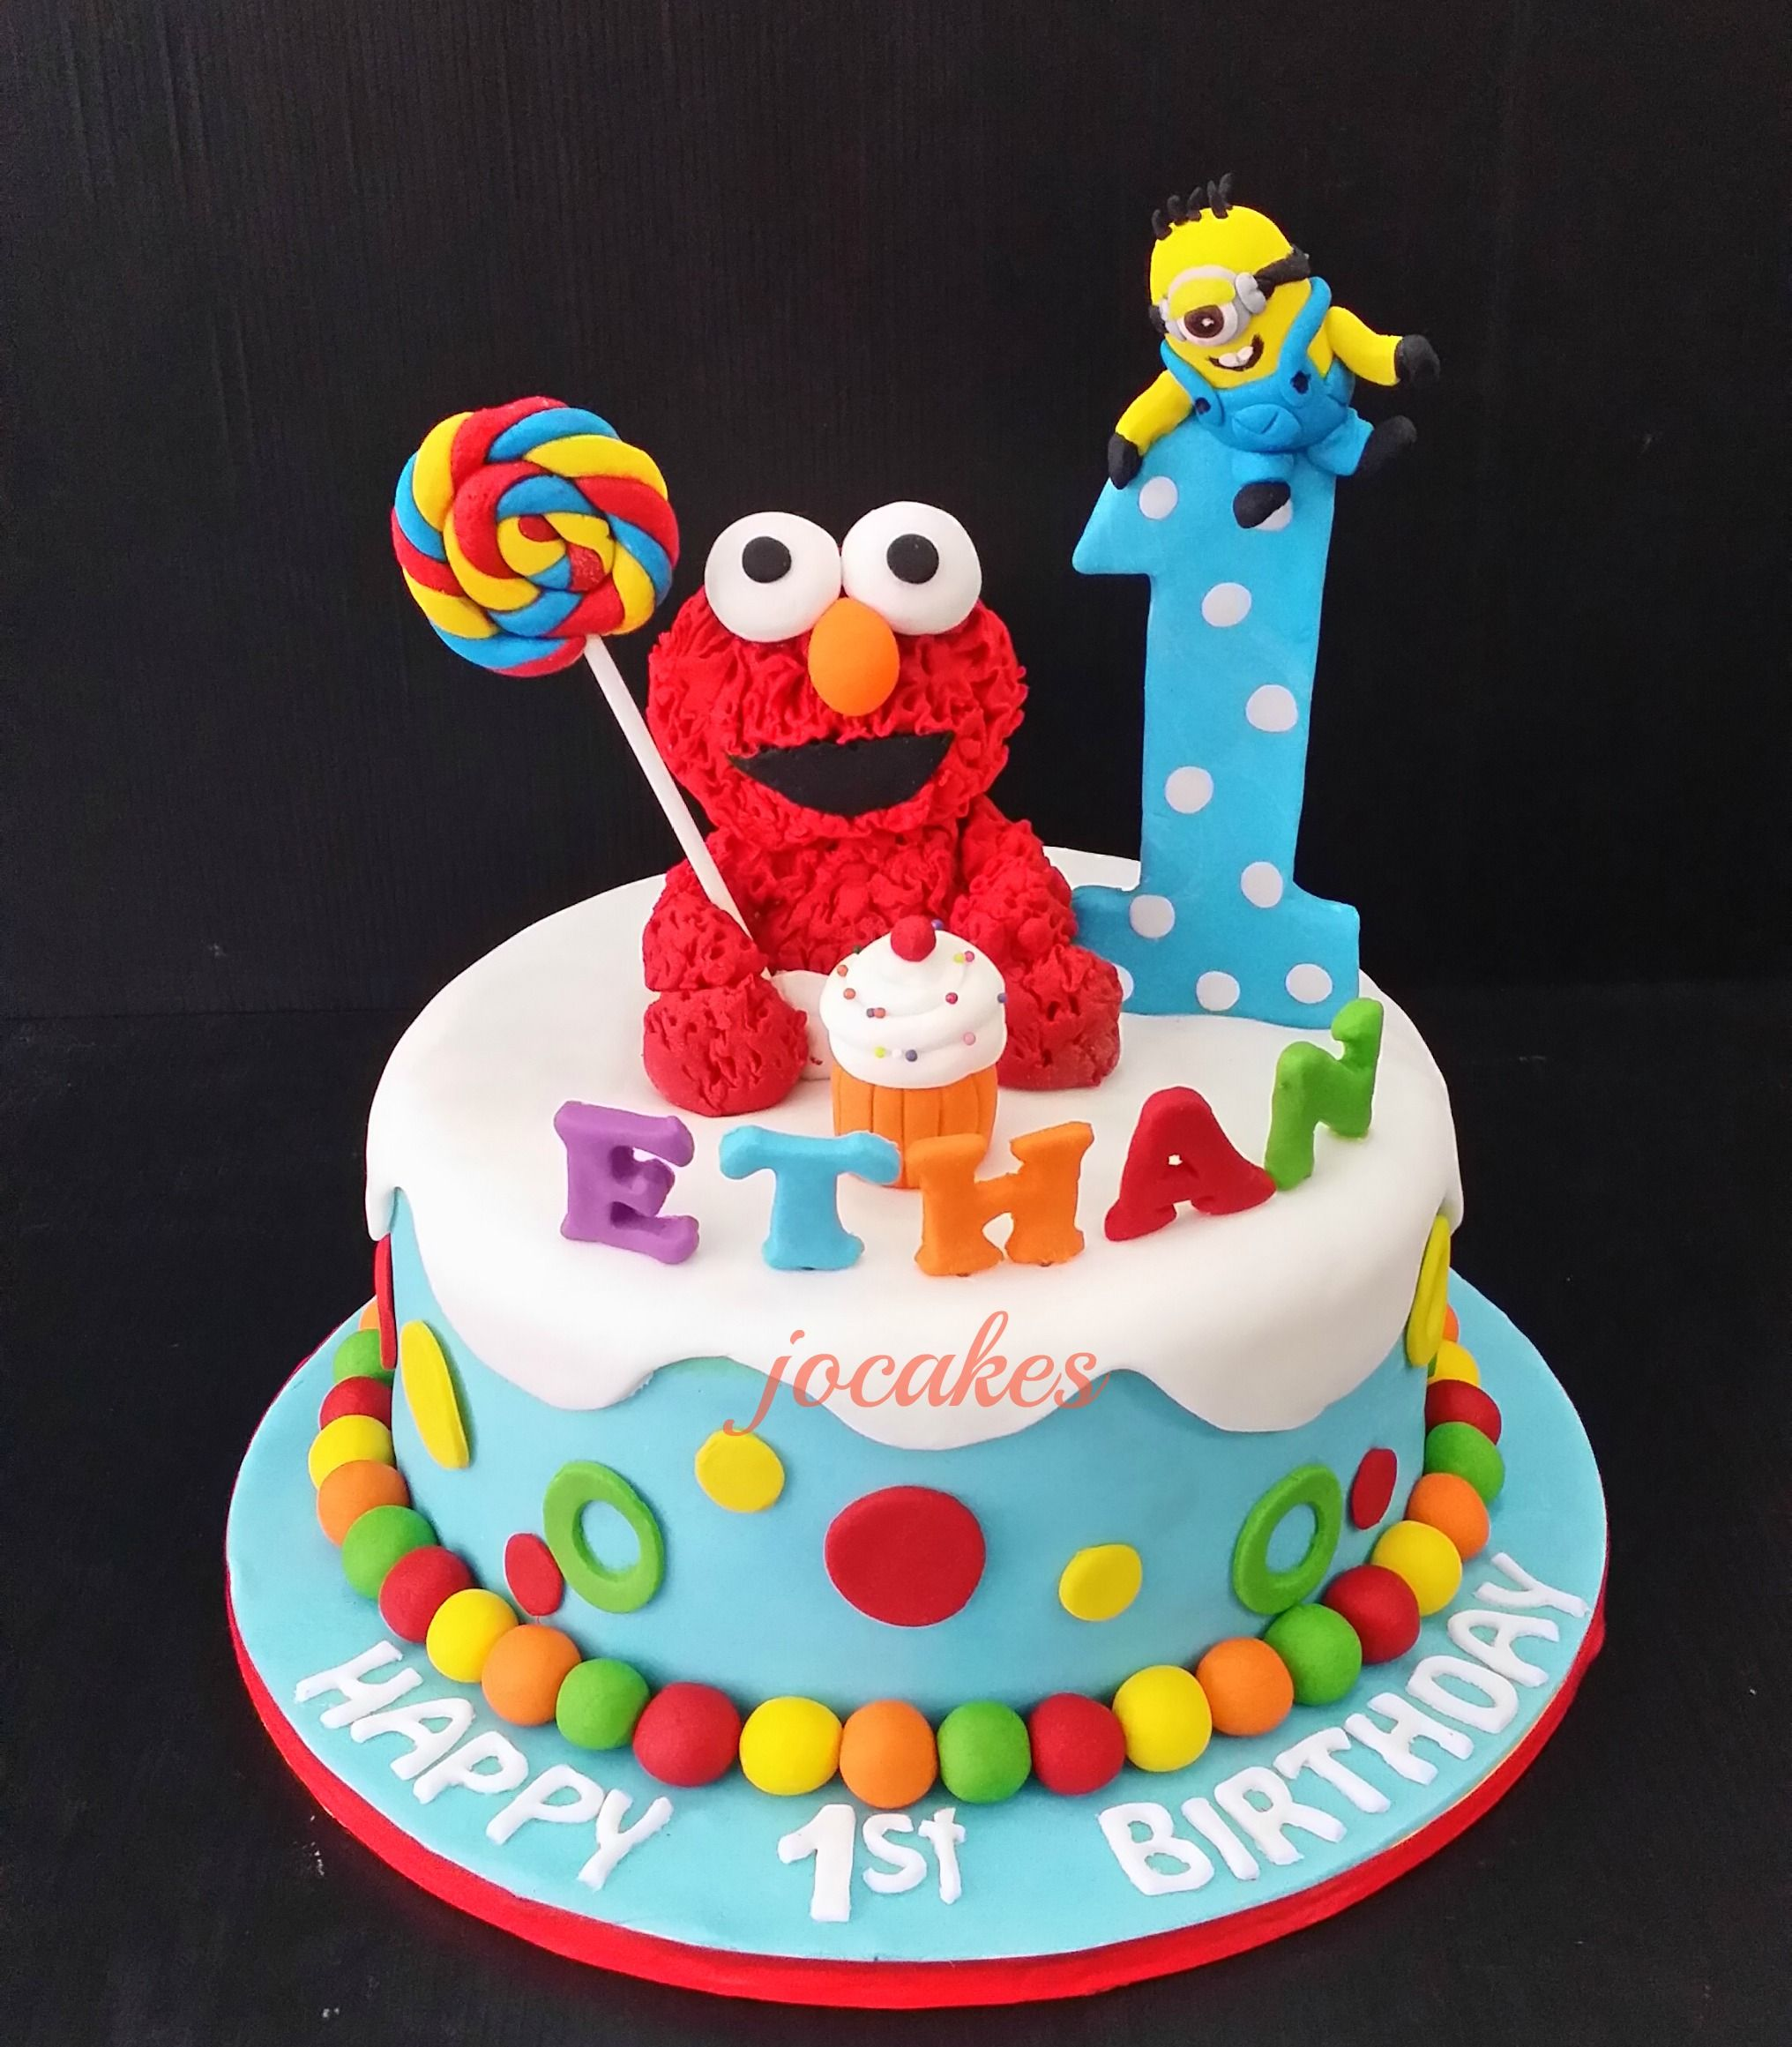 Elmo cake and cookies for Ethans 1st birthday Description from